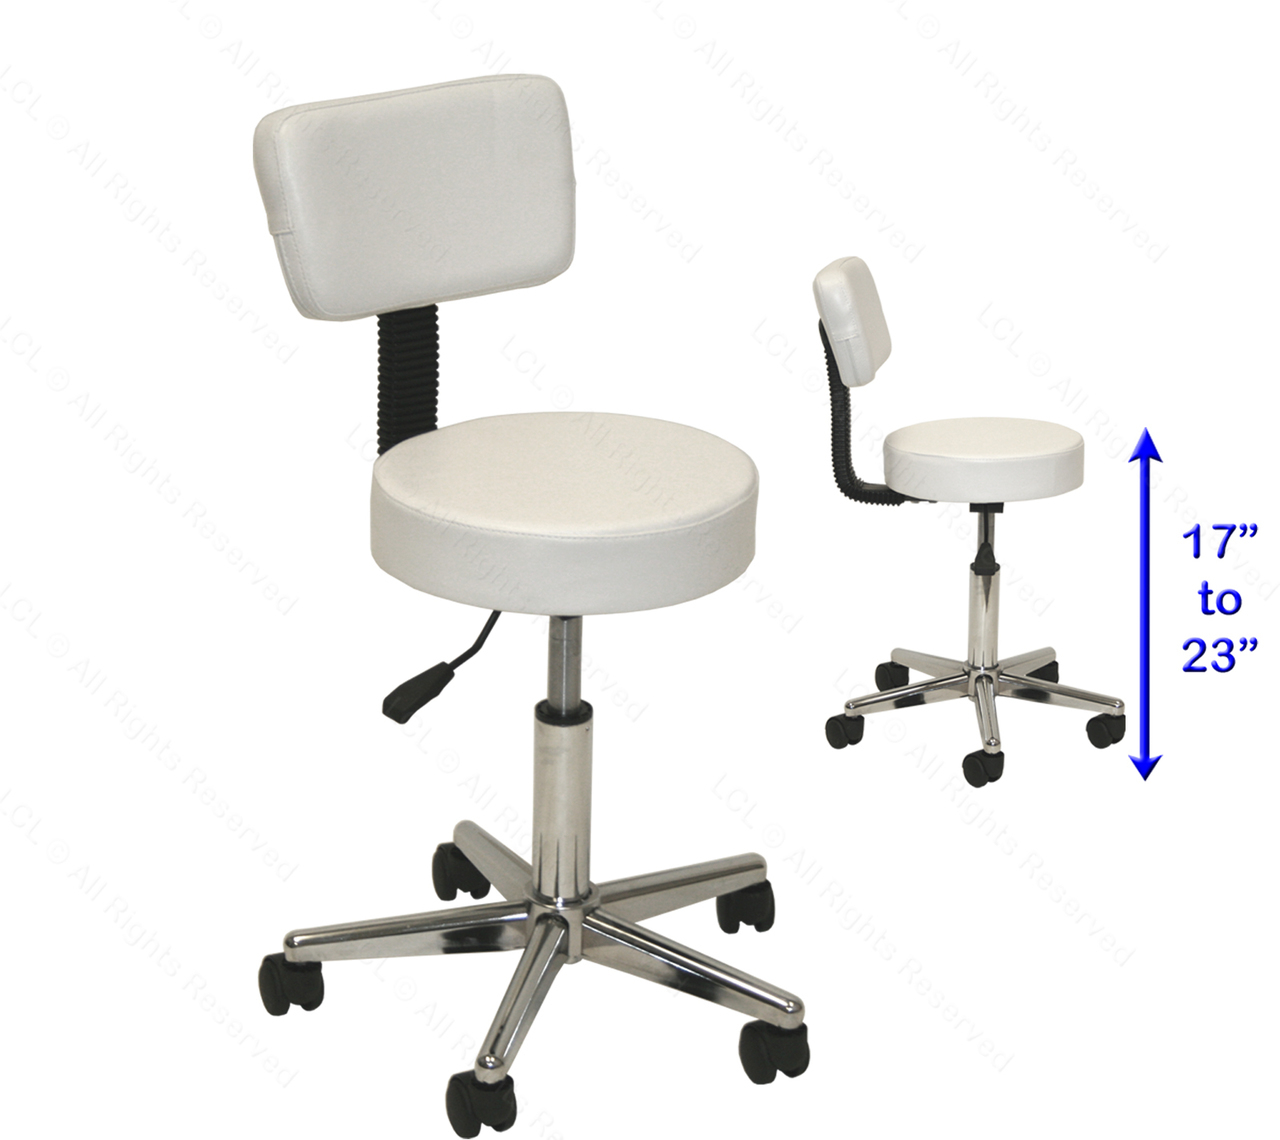 LCL Beauty Adjustable White Stool Chair Back Support Foot Rest Dentist  Doctor Medical Office Salon Spa